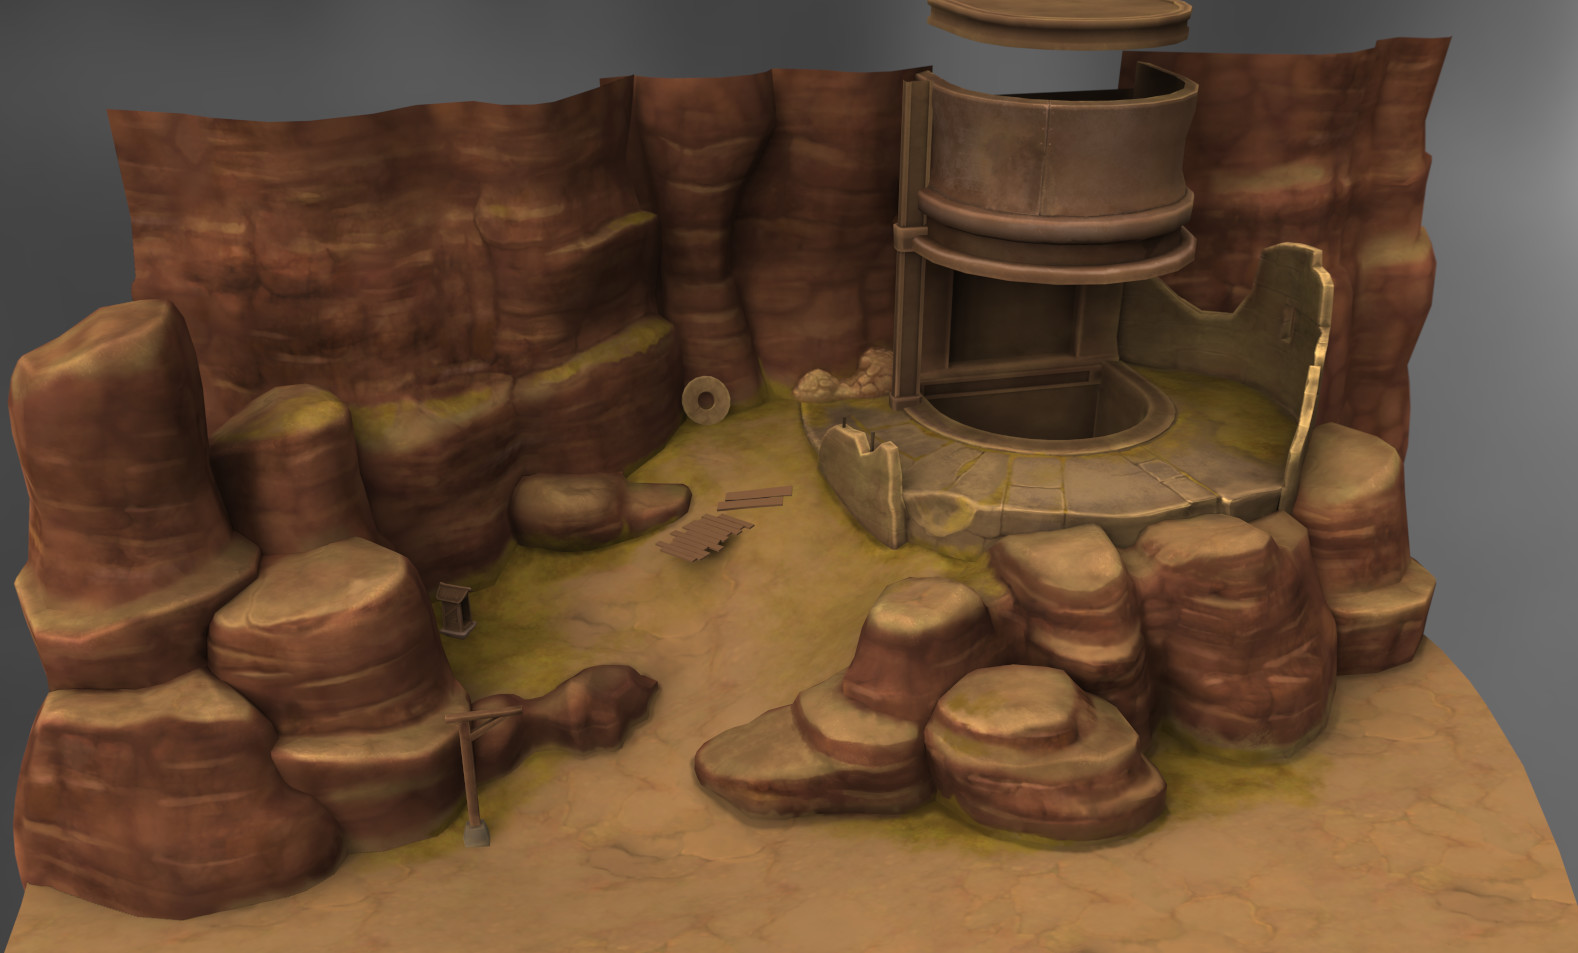 3D scene from the game. Painted in 3D-coat.